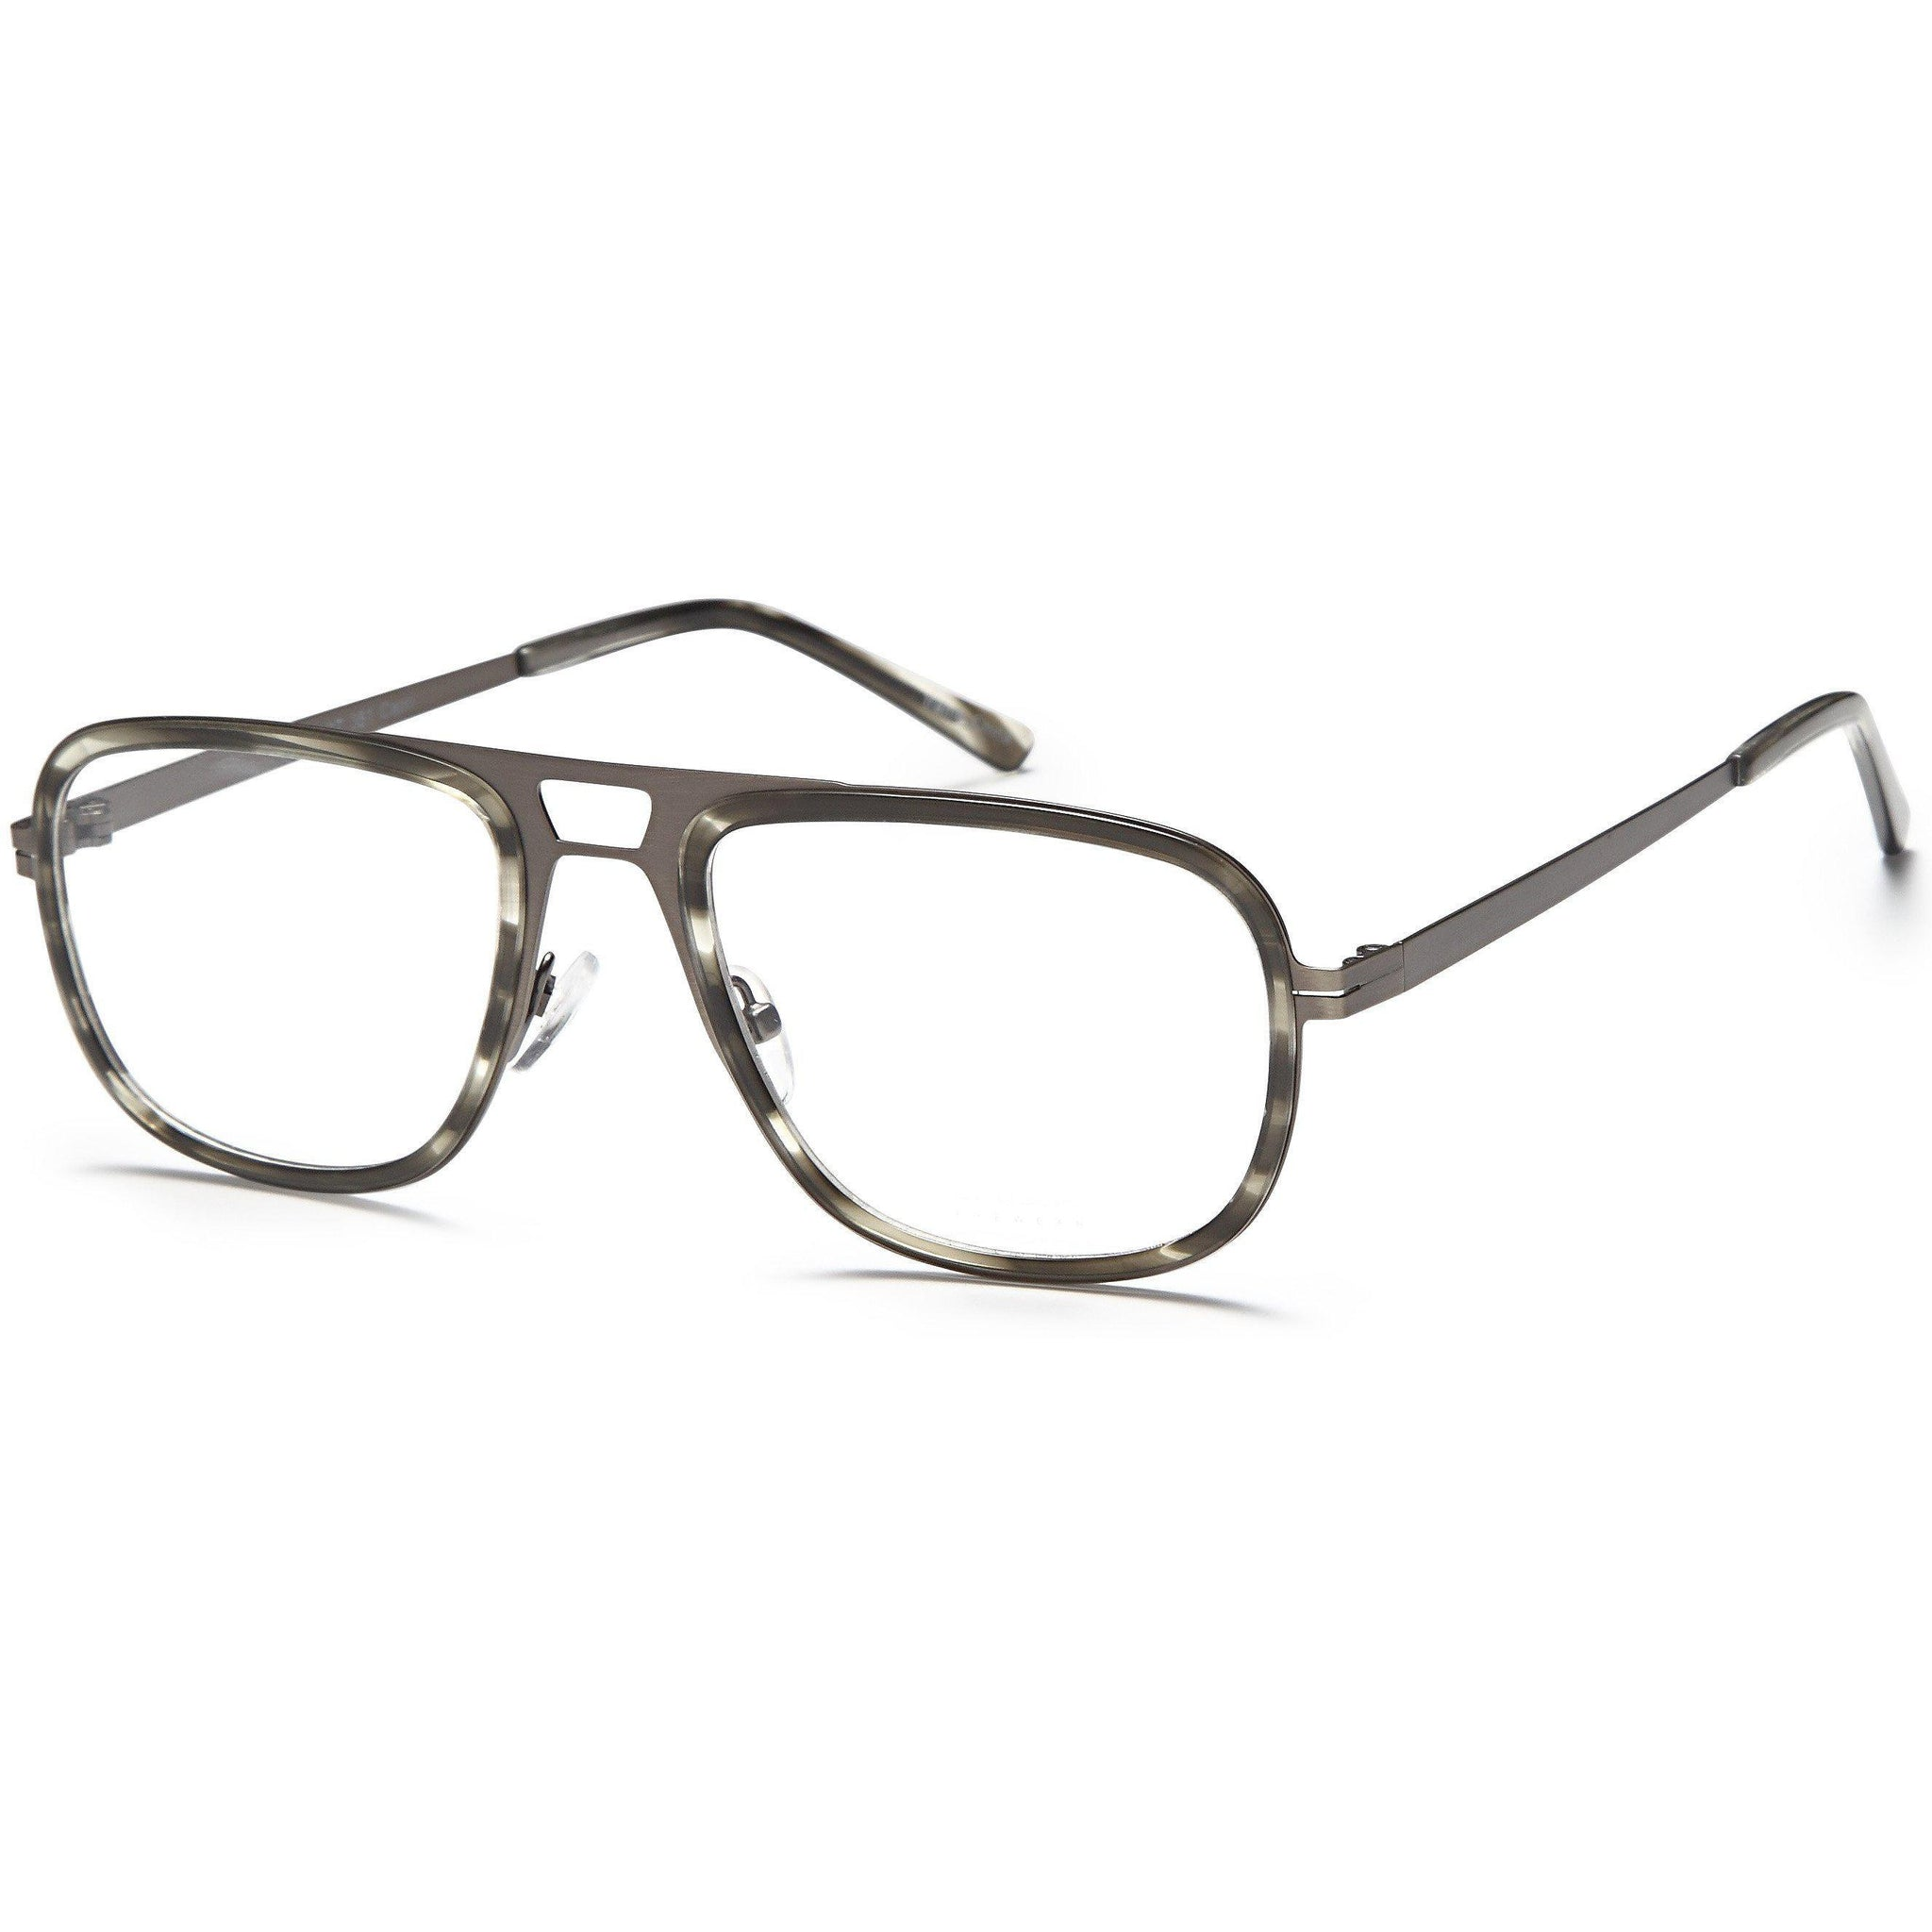 Sophistics Prescription Glasses ART 351 Frame